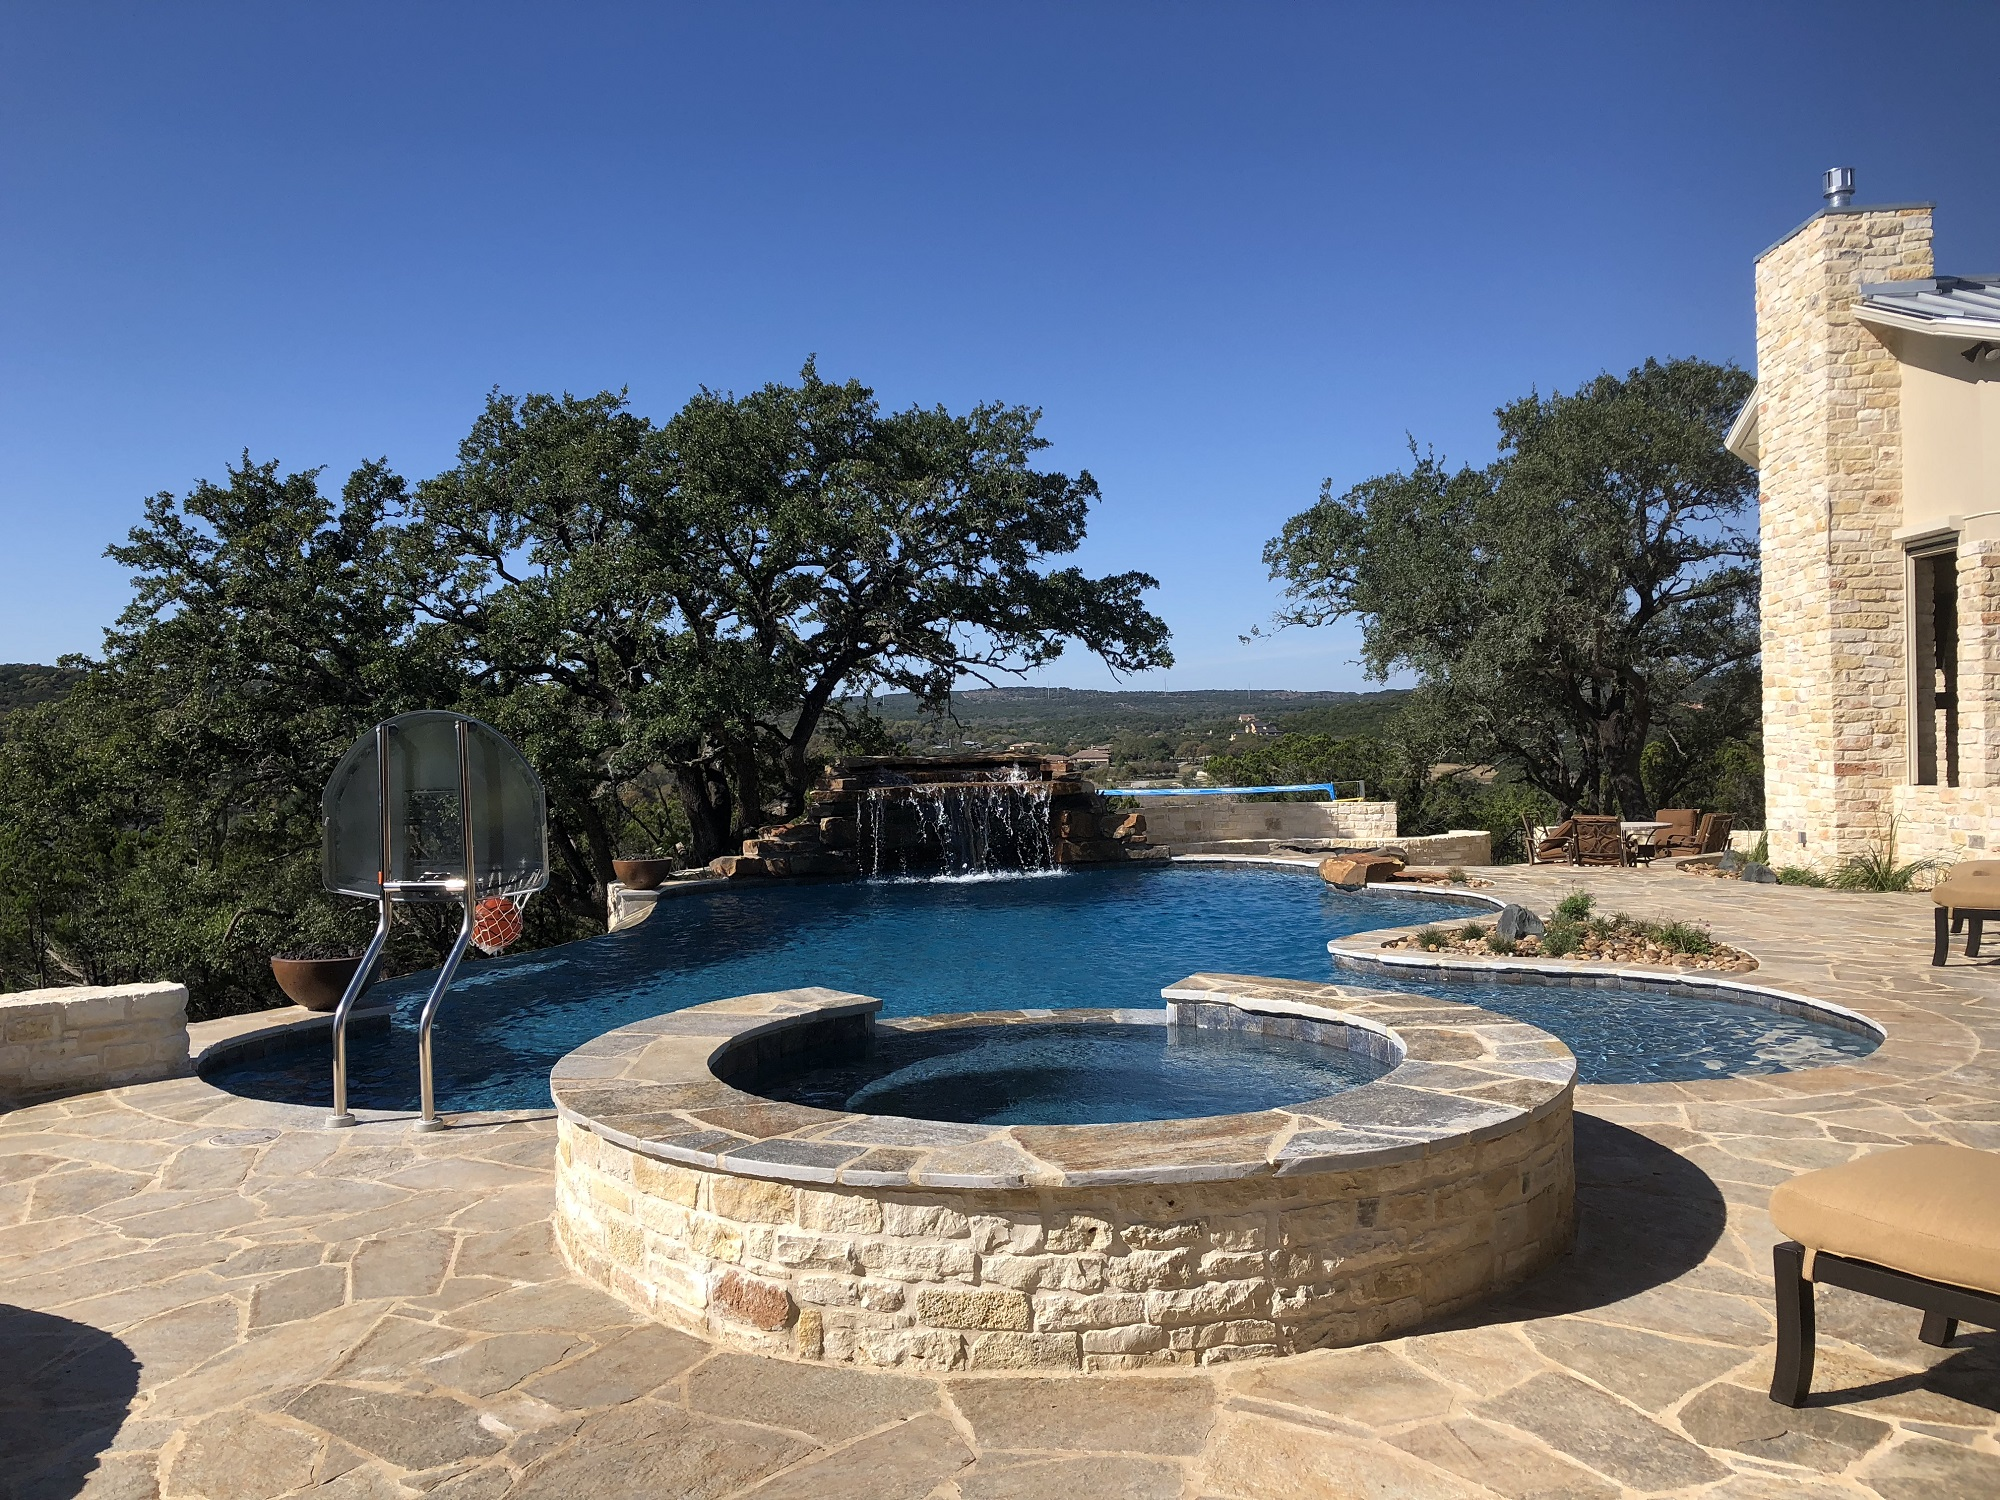 5 Tips to Help You Hire the Best Contractor for Constructing Your Customized Swimming Pool